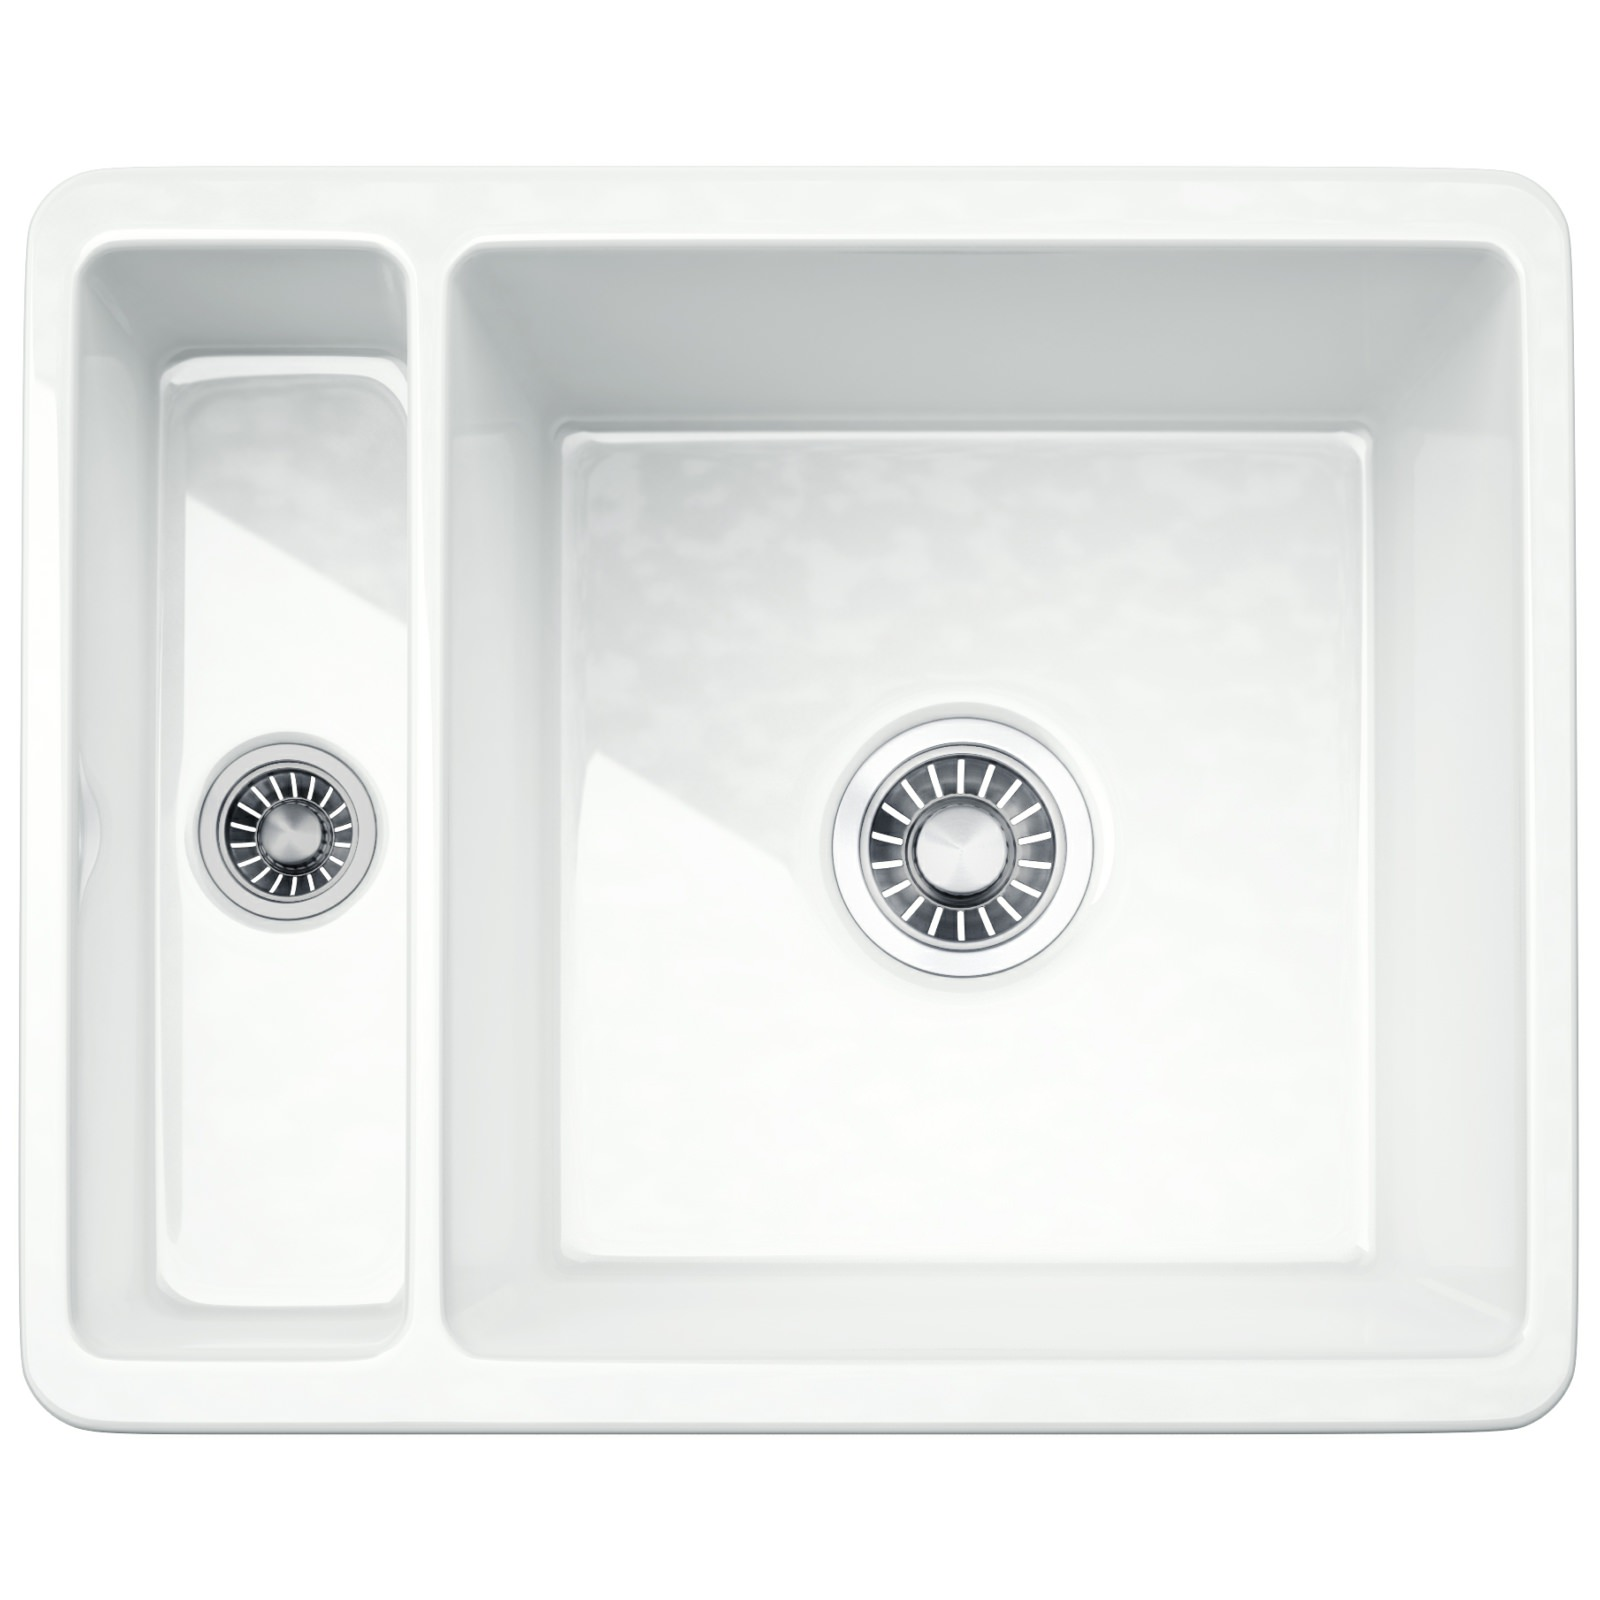 Franke kubus kbk 160 ceramic 1 5 bowl undermount kitchen - Undermount ceramic kitchen sink ...